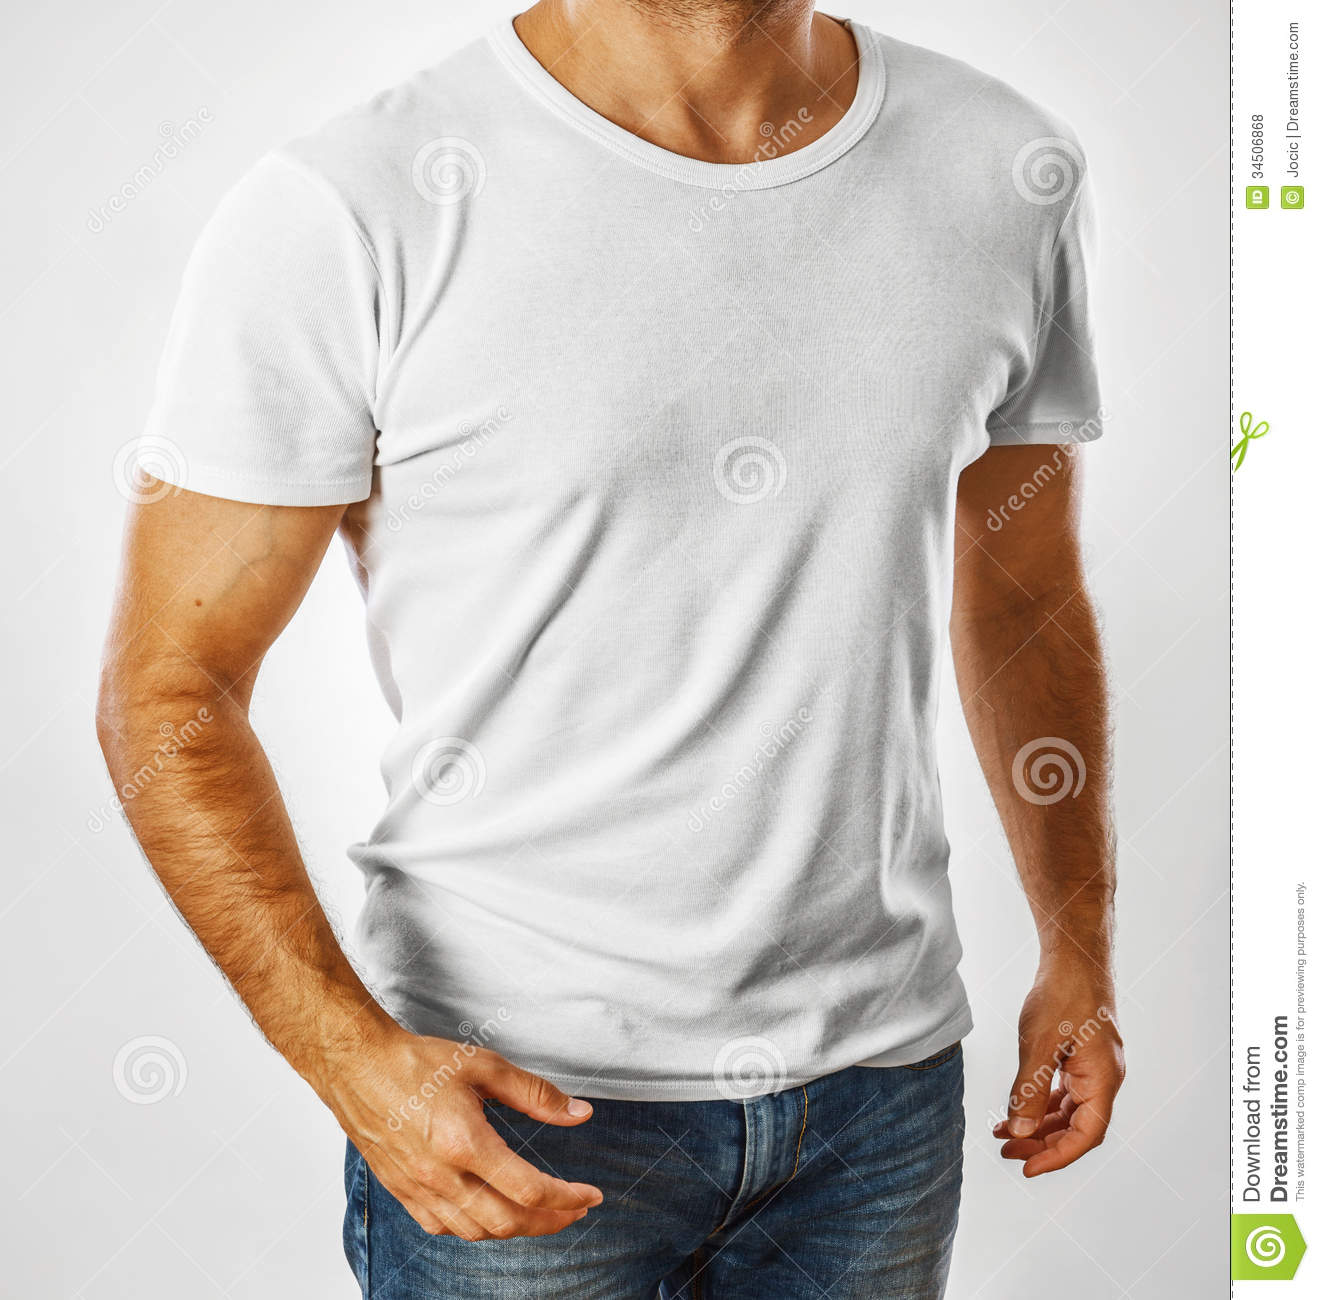 white t shirt on a young man template royalty free stock photos image 34506868. Black Bedroom Furniture Sets. Home Design Ideas